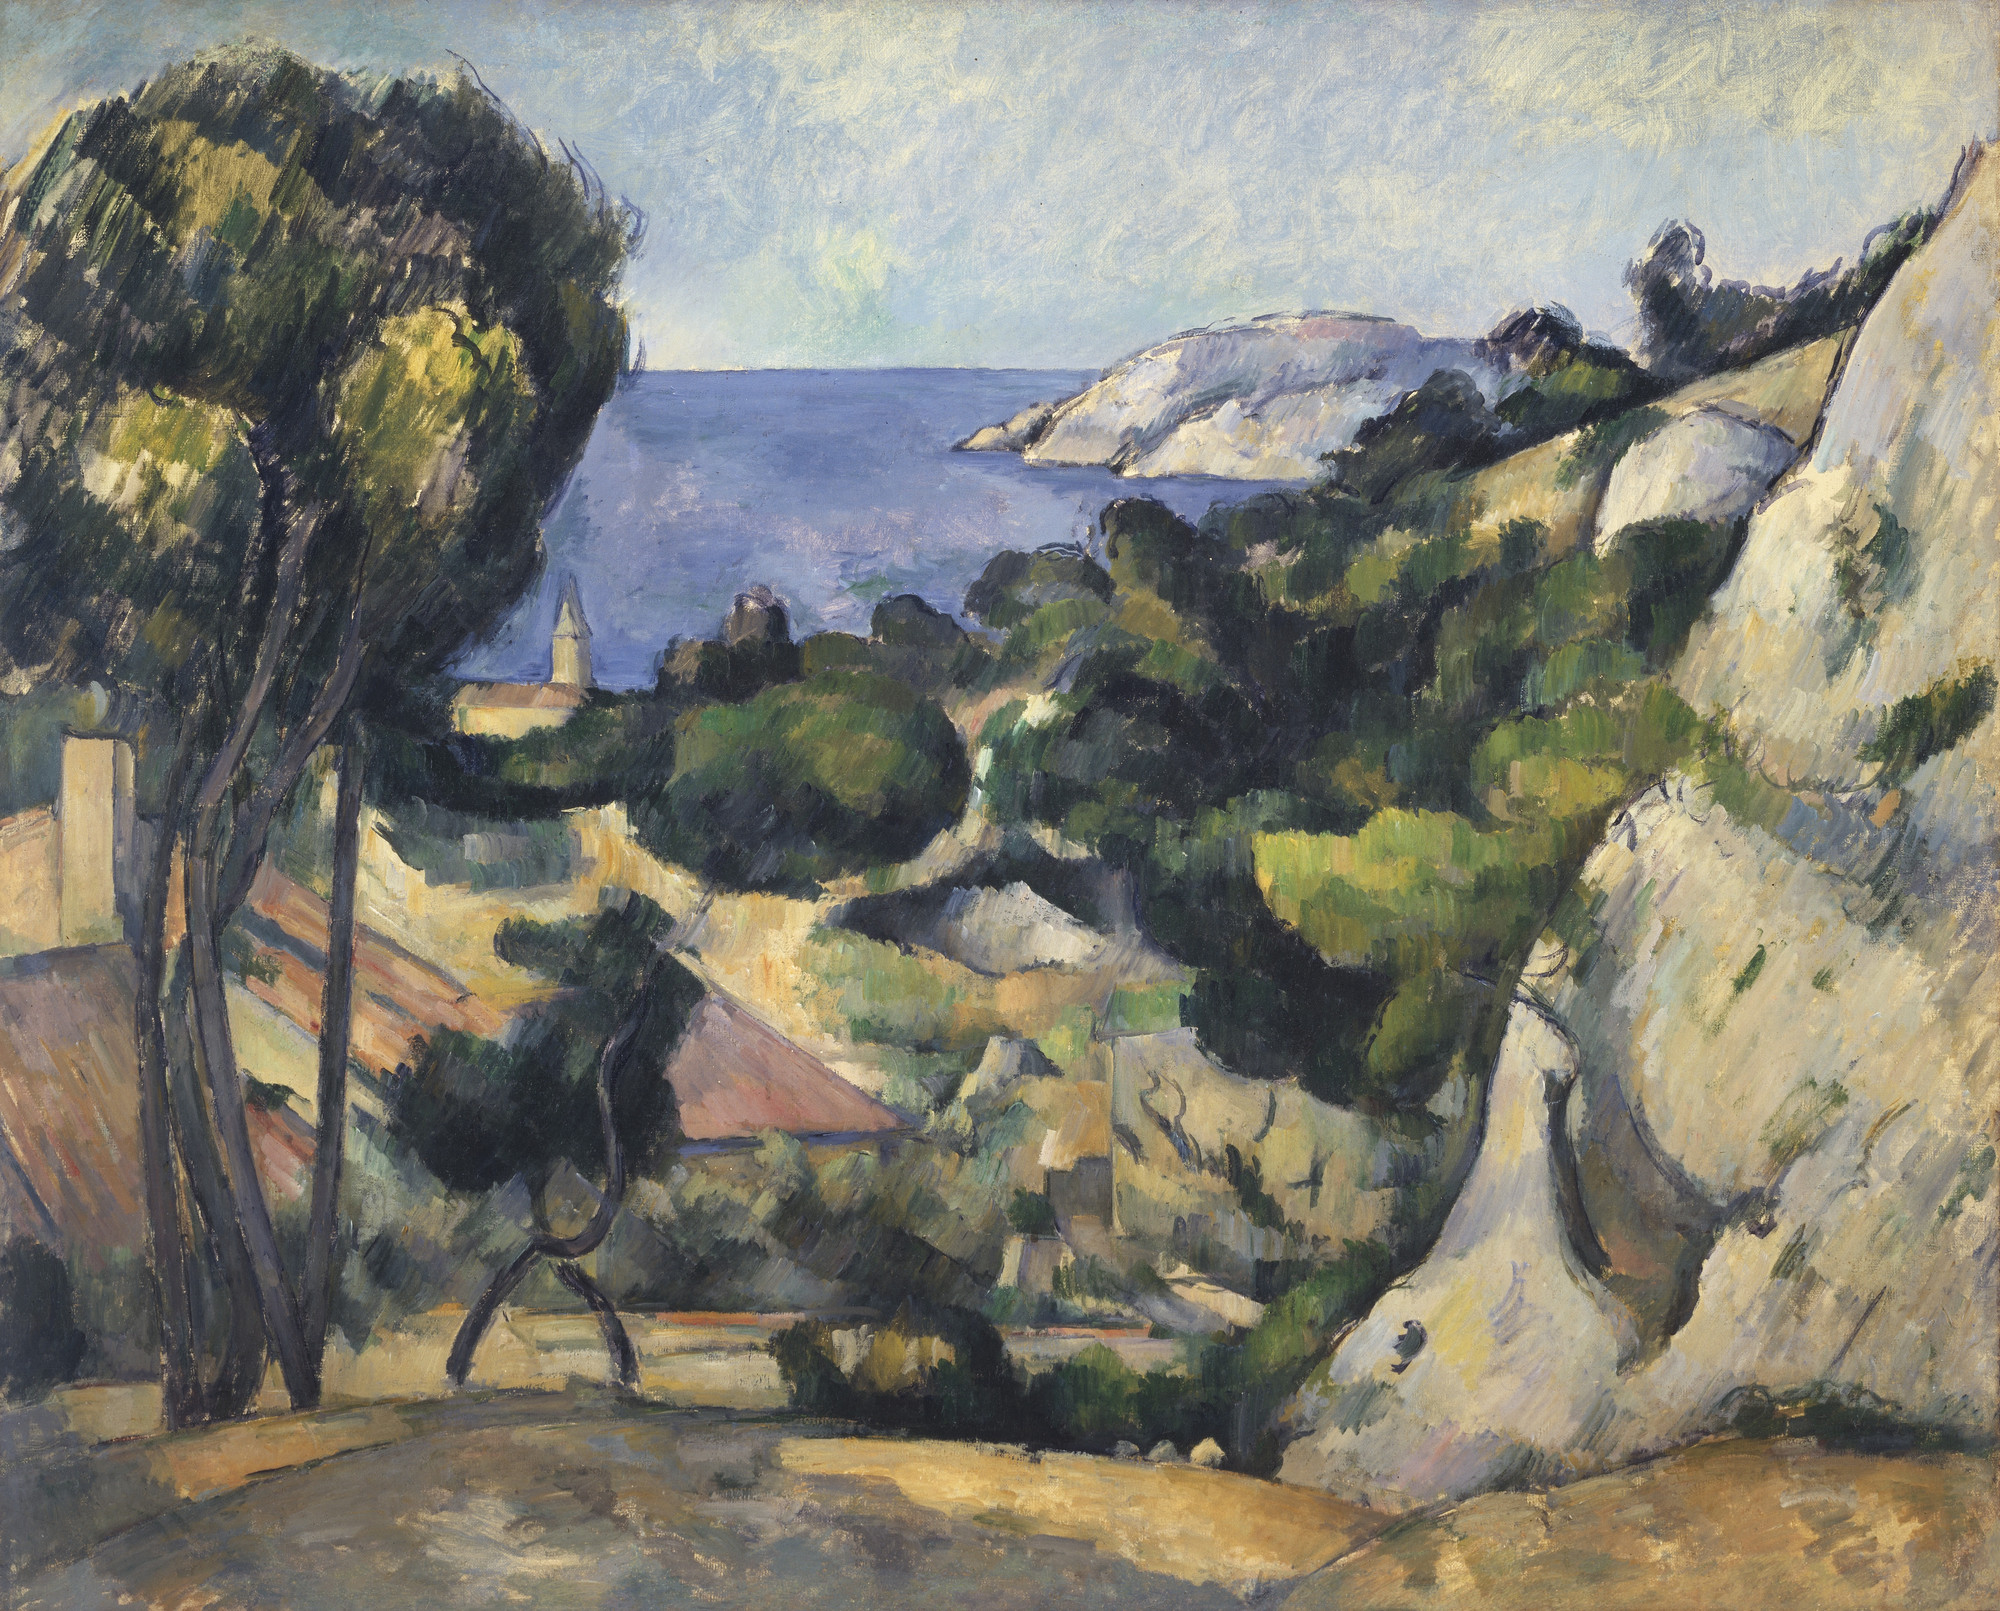 Paul Cézanne. L'Estaque. 1879-83